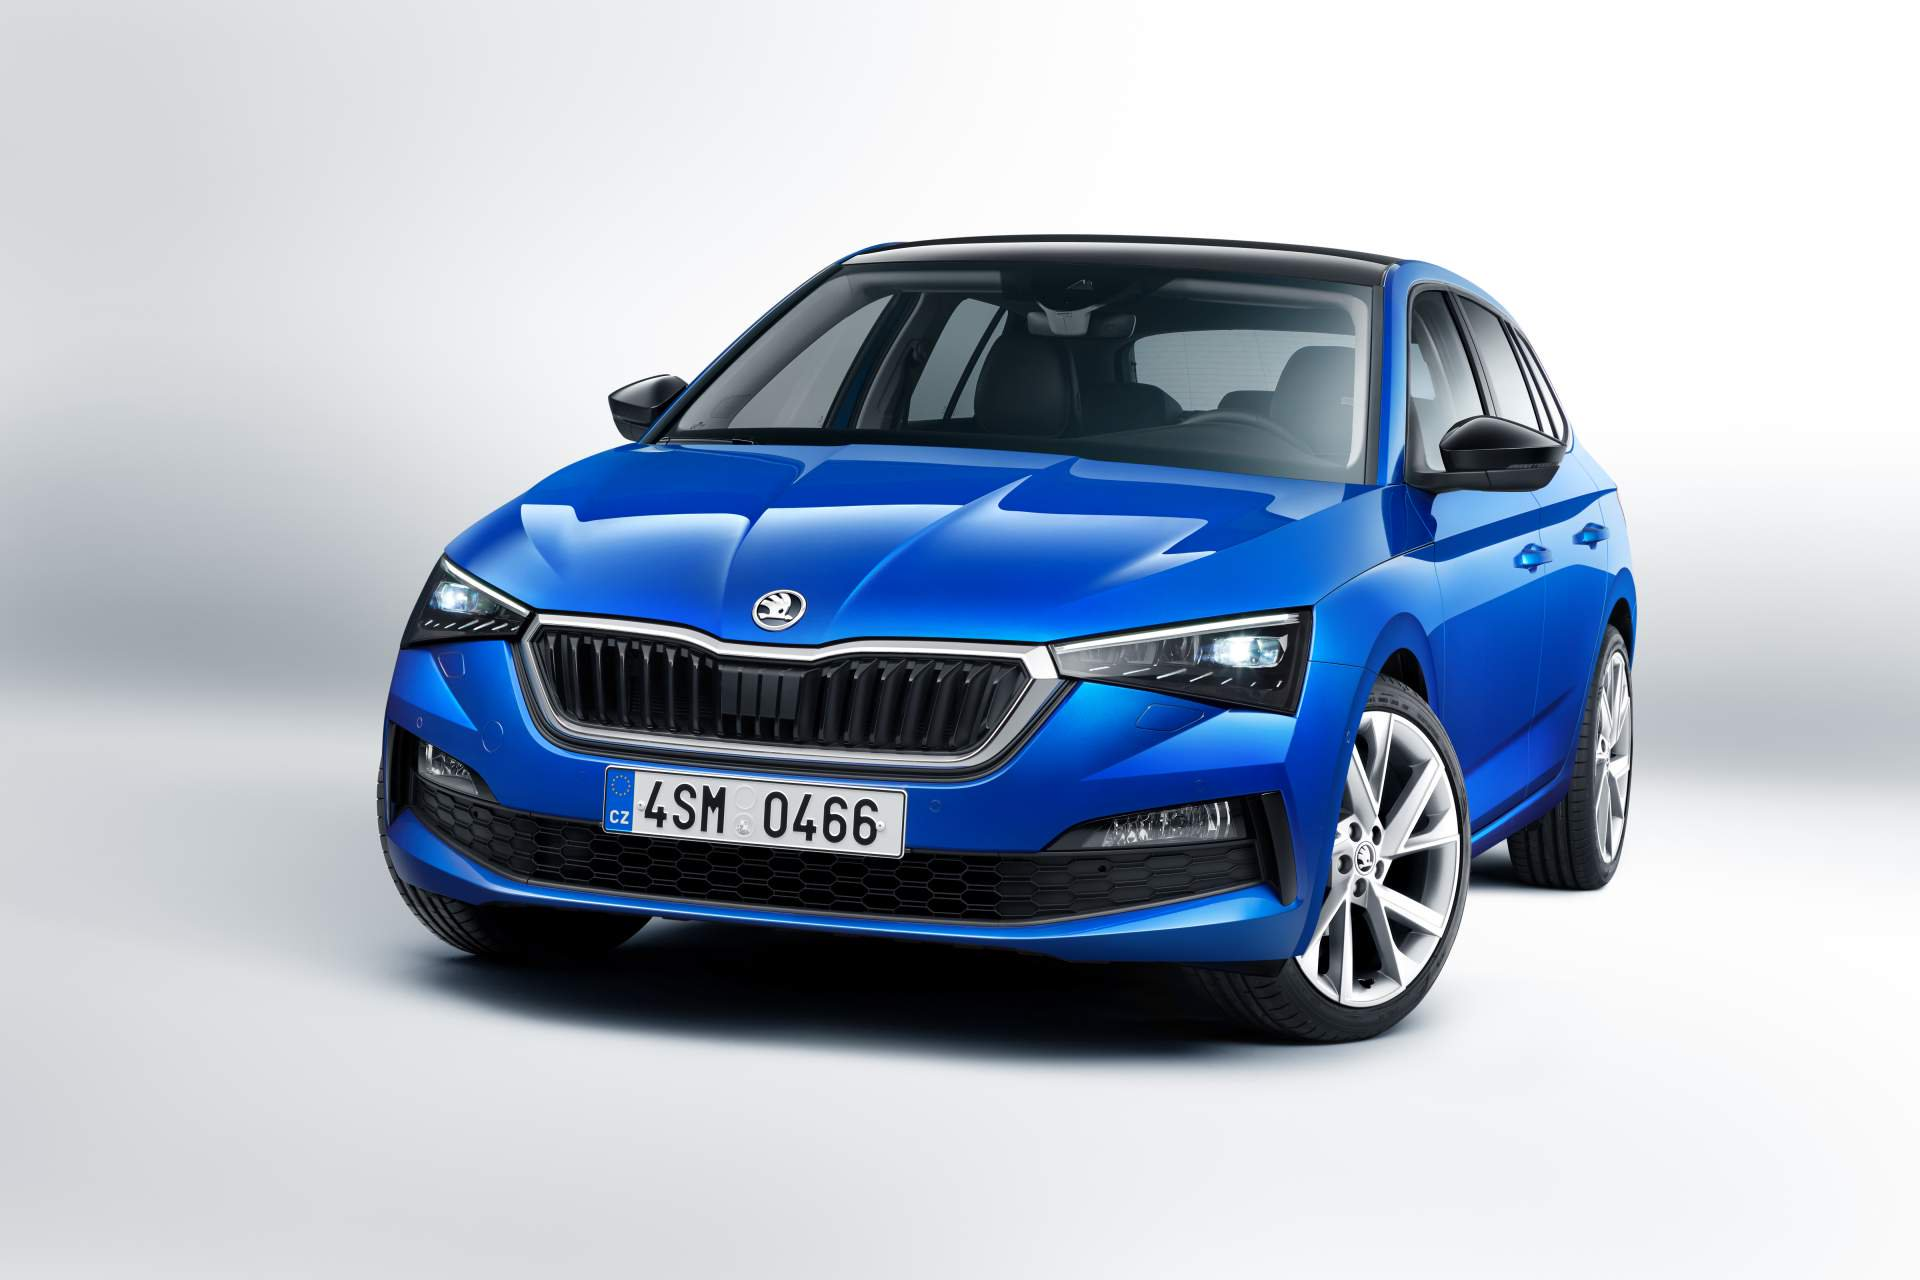 Headlights For Cars >> Skoda Scala Unveiled as Bold Understatement With Modern Compact Car Tech - autoevolution